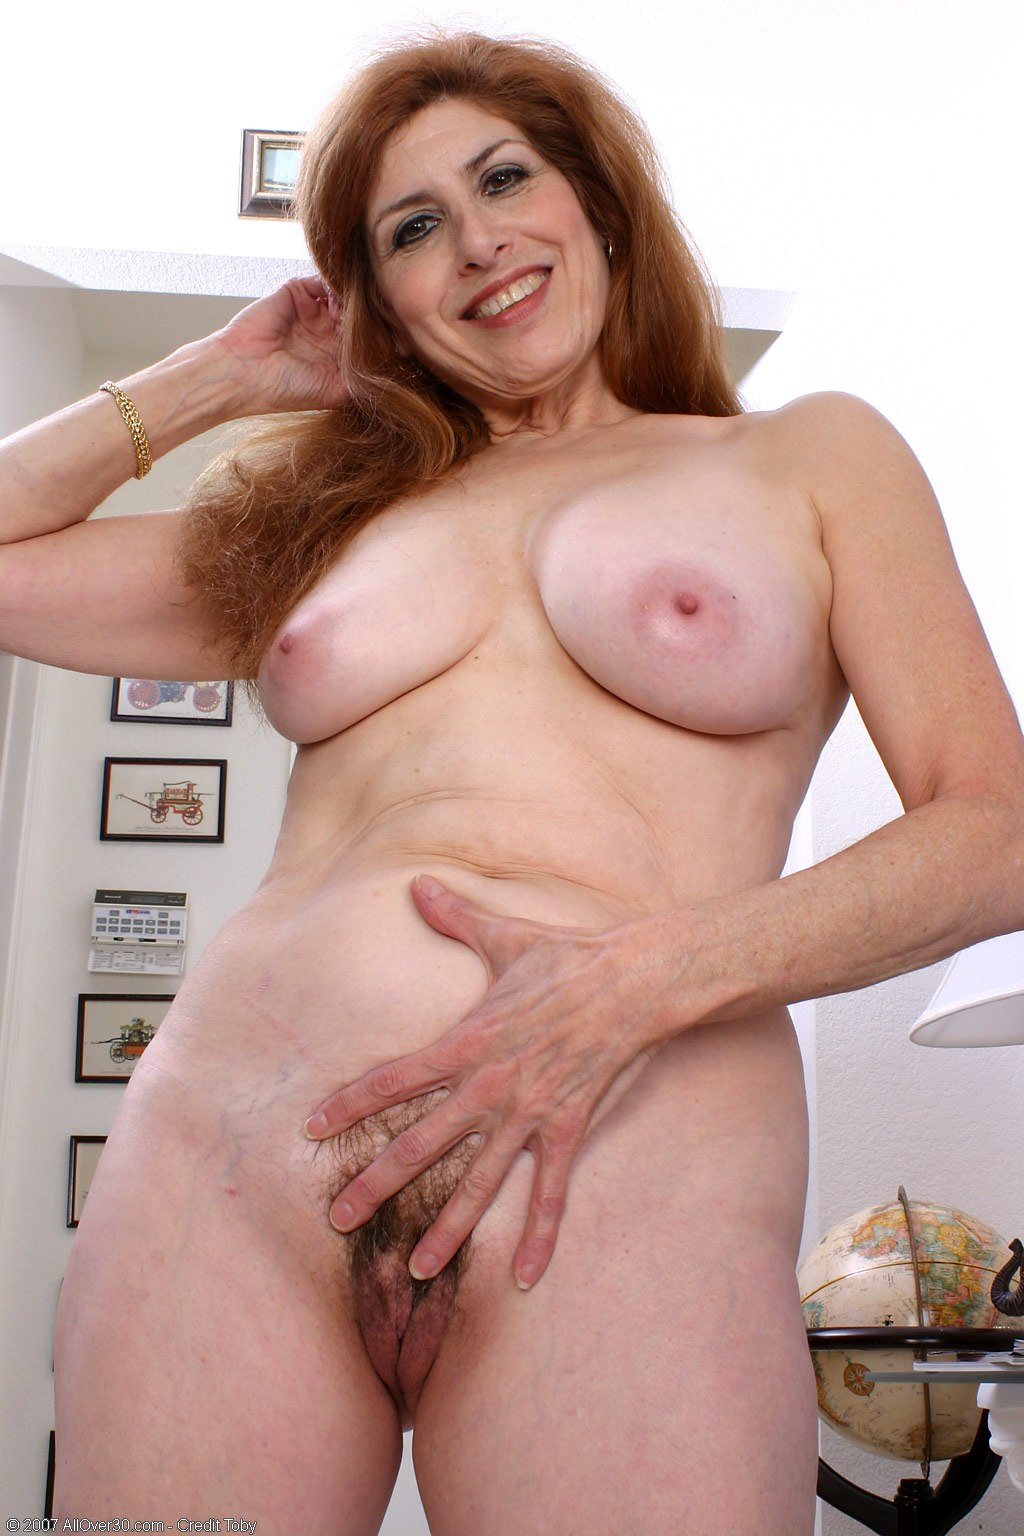 Old redhead sex video